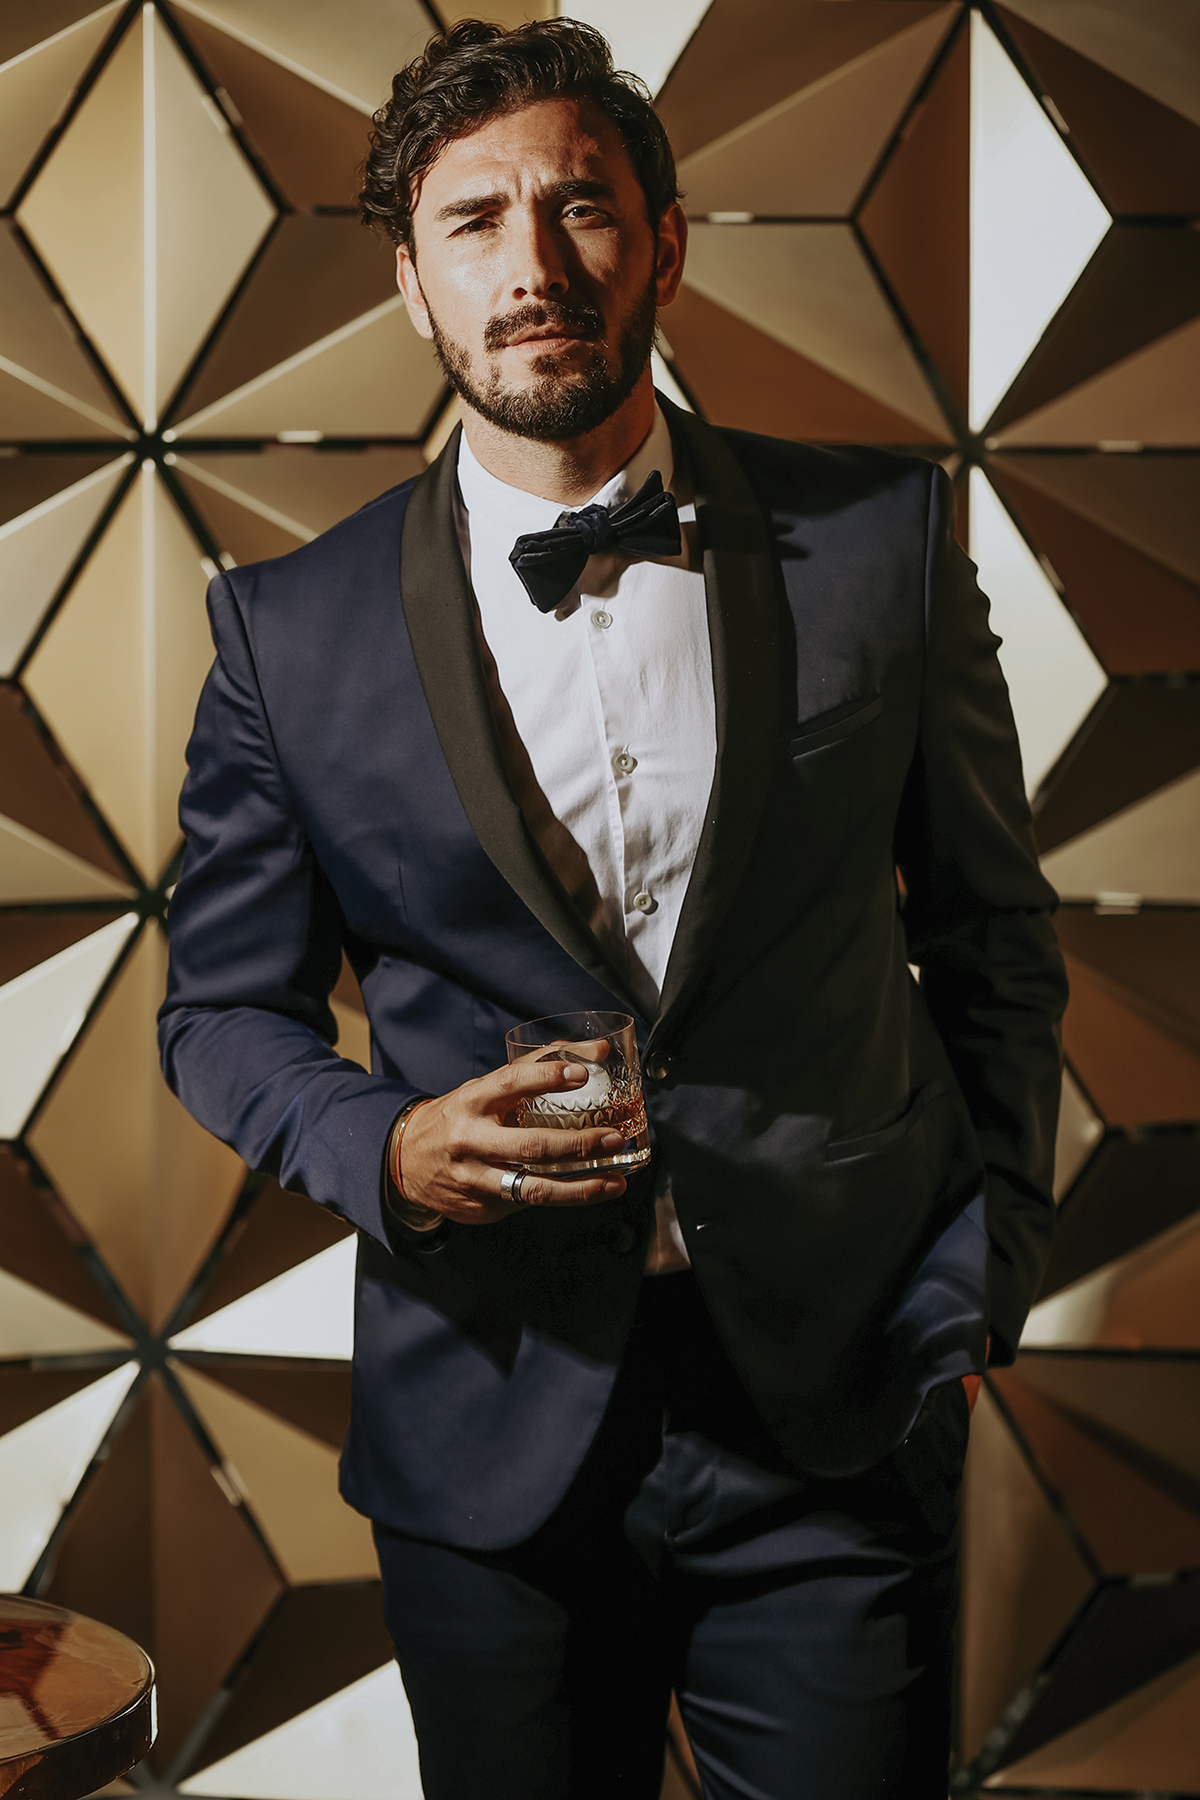 """The Vow FactorAll is fair in love and wardrobe - There are nuptial necessities for guy-style, too. Fashion-forward menswear is mandatory. The focus is on a slim-fit, long sleeves, and a suit that's true to size. """"Tuxes are streamlined and have defining details that make the jacket stand out,"""" says Michael Barone, owner of MODA. """"Standout details — such as buttons, flap pockets, and basic structure."""" As for weddings, Barone suggests even the guests wear a jacket no matter where the venue. """"Even if the wedding is in a barn, wear a jacket. And, if it's happening at a country club you better have on a tie. And, wear your shirt tucked in. Untucked shirts should stay at a house party, not a wedding."""